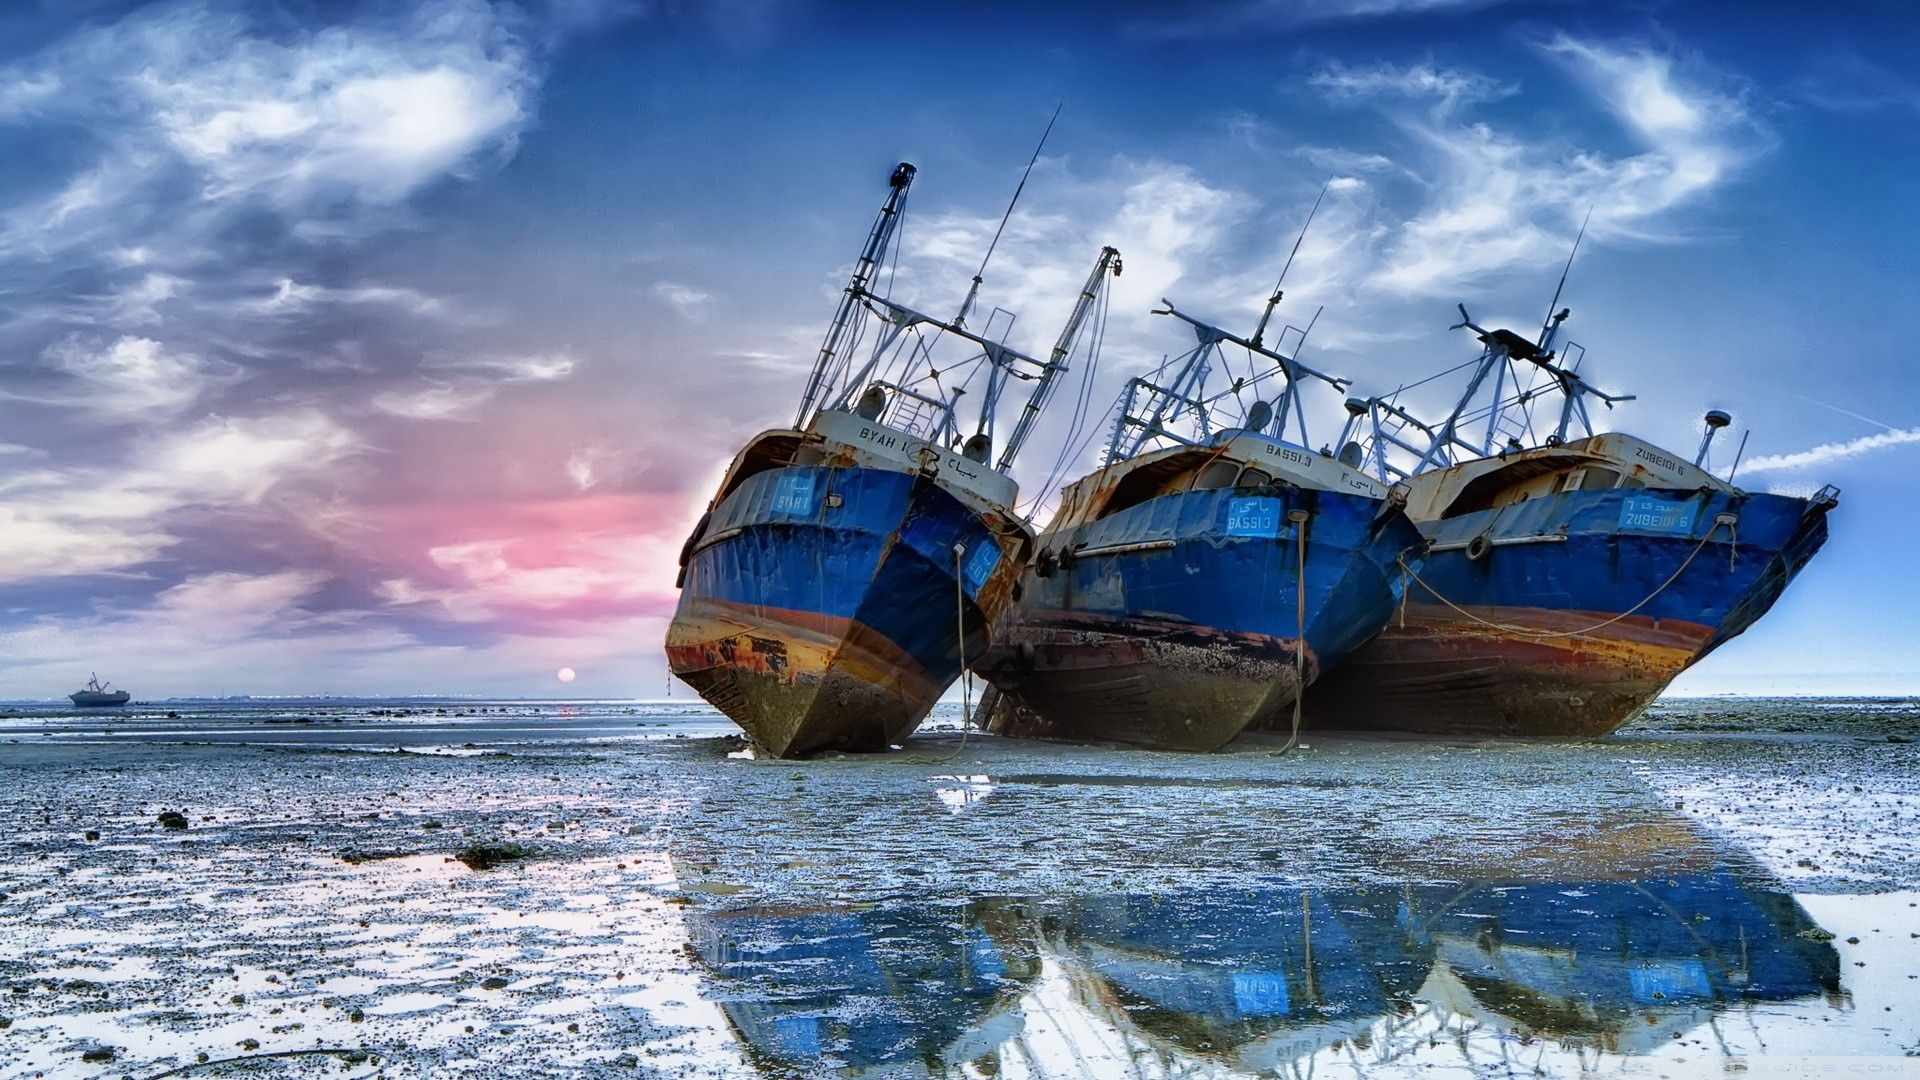 Pin By Nettie Wooster On Pictures For Videos With Images Beach Wallpaper Salt Water Fishing Boat